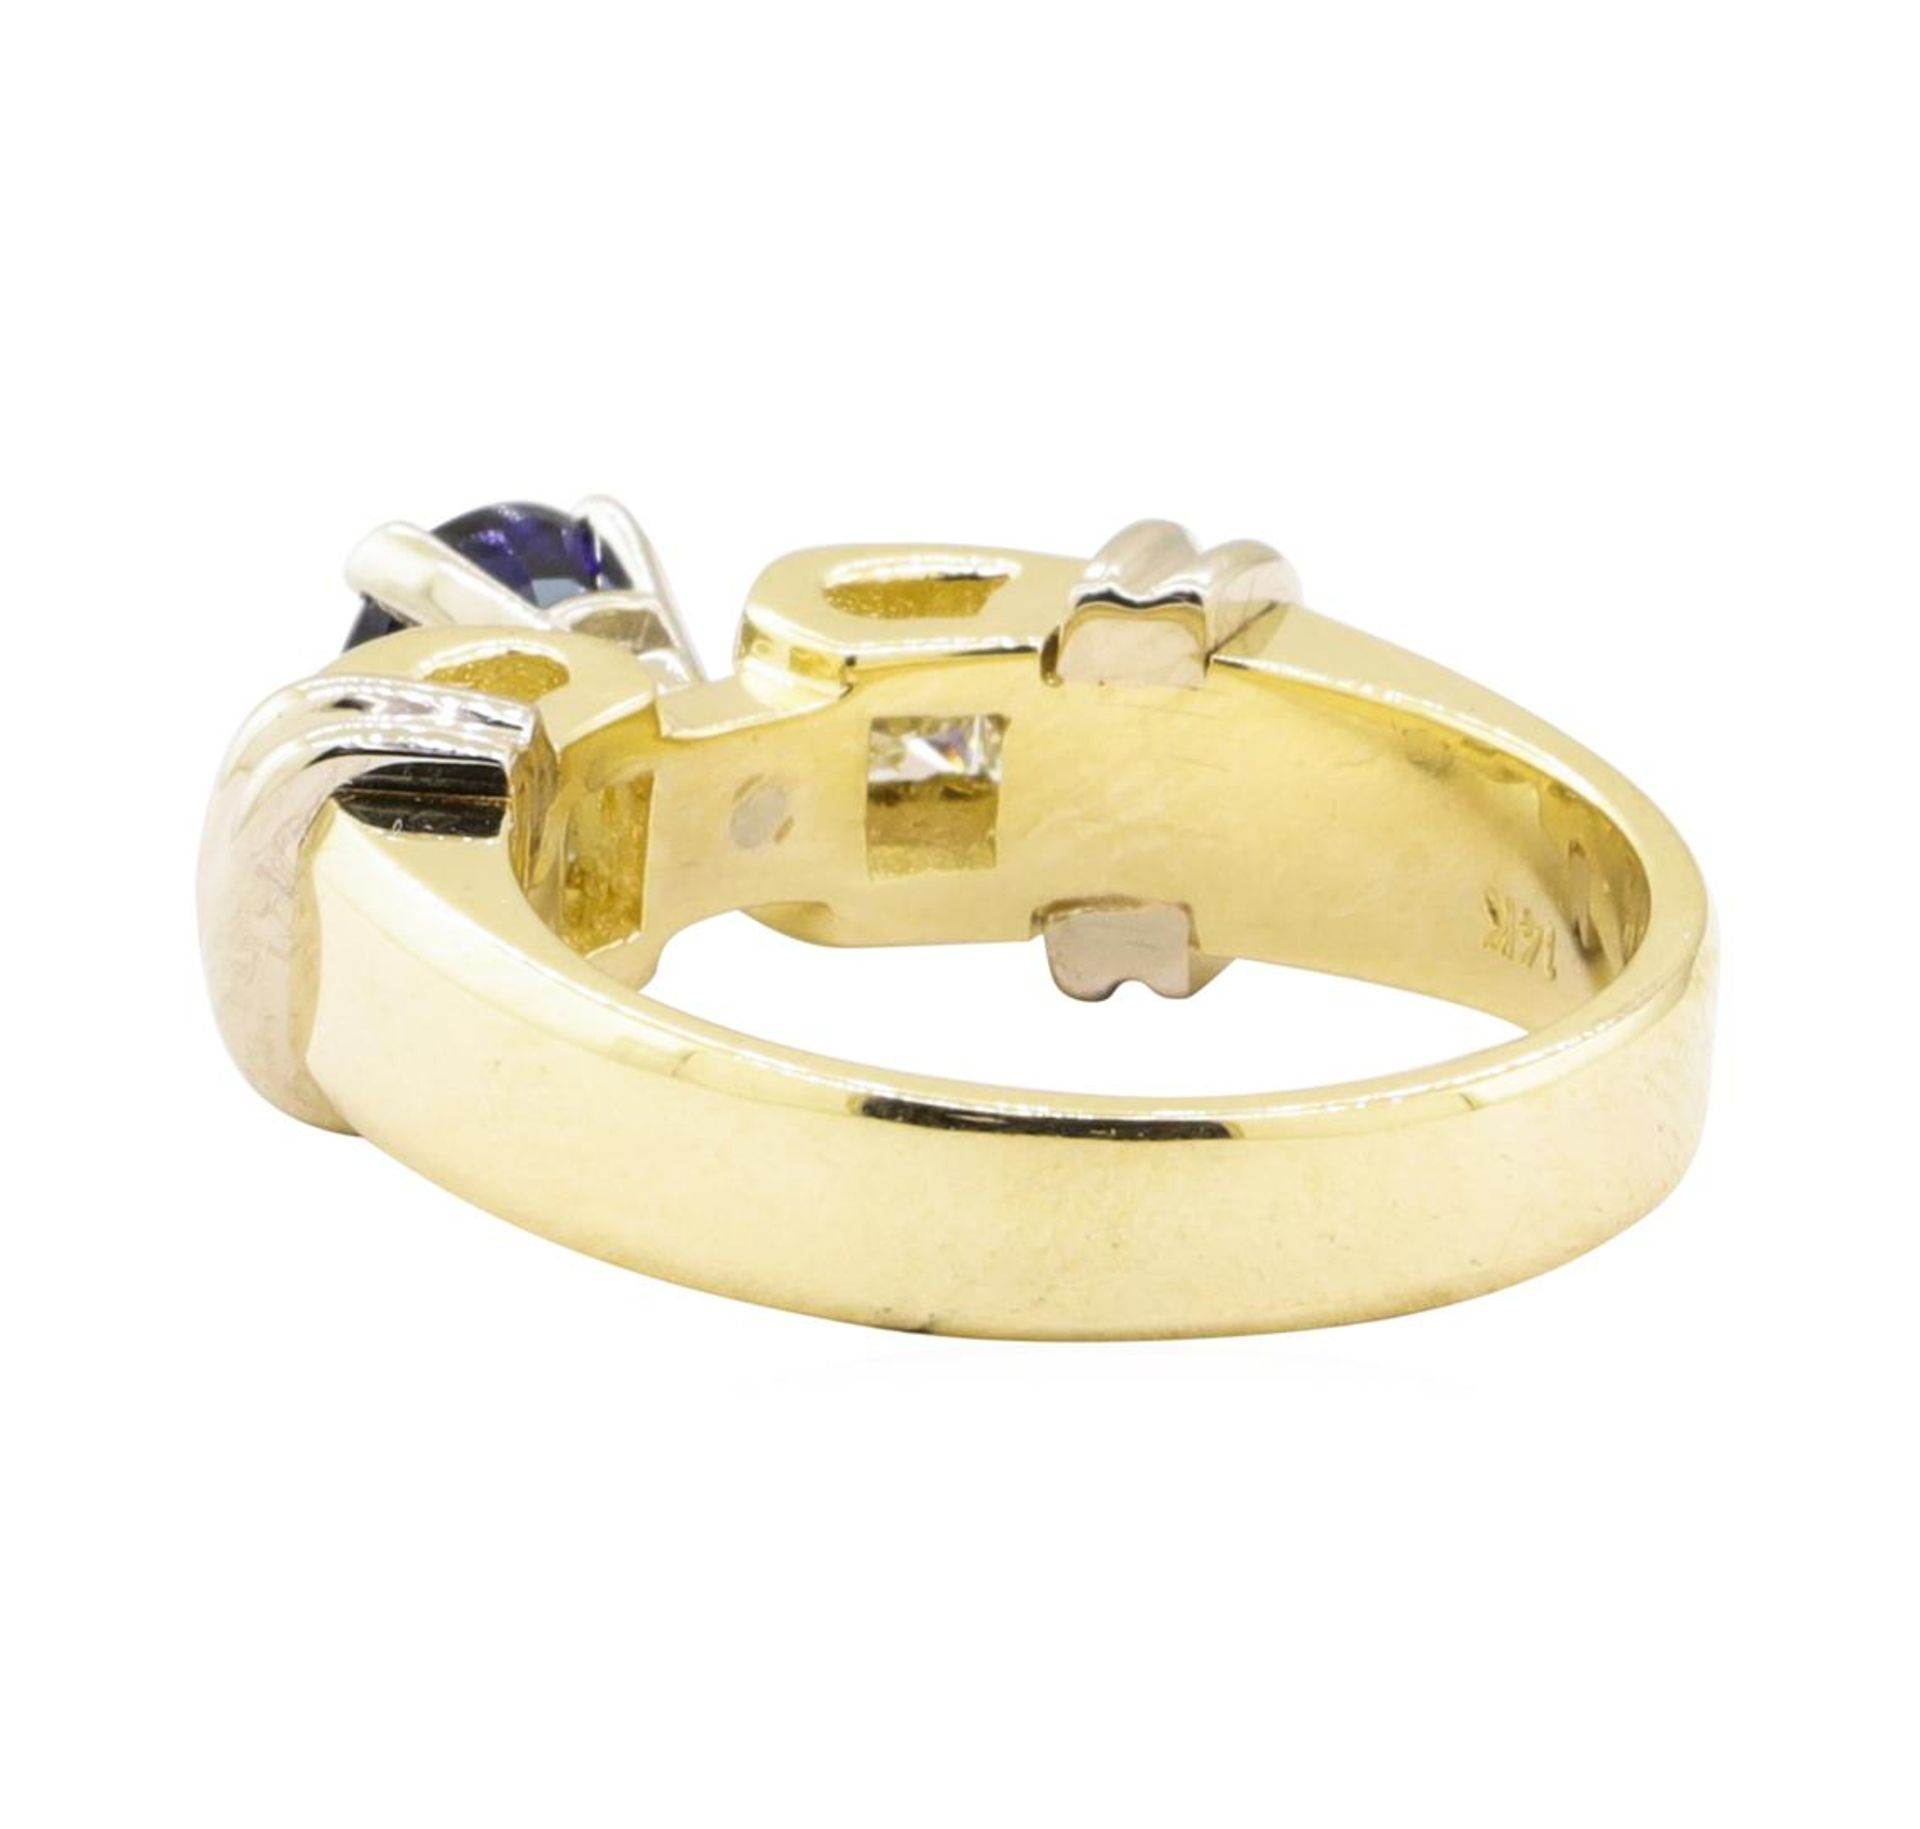 1.67 ctw Blue Sapphire And Diamond Ring - 14KT Yellow And White Gold - Image 3 of 5